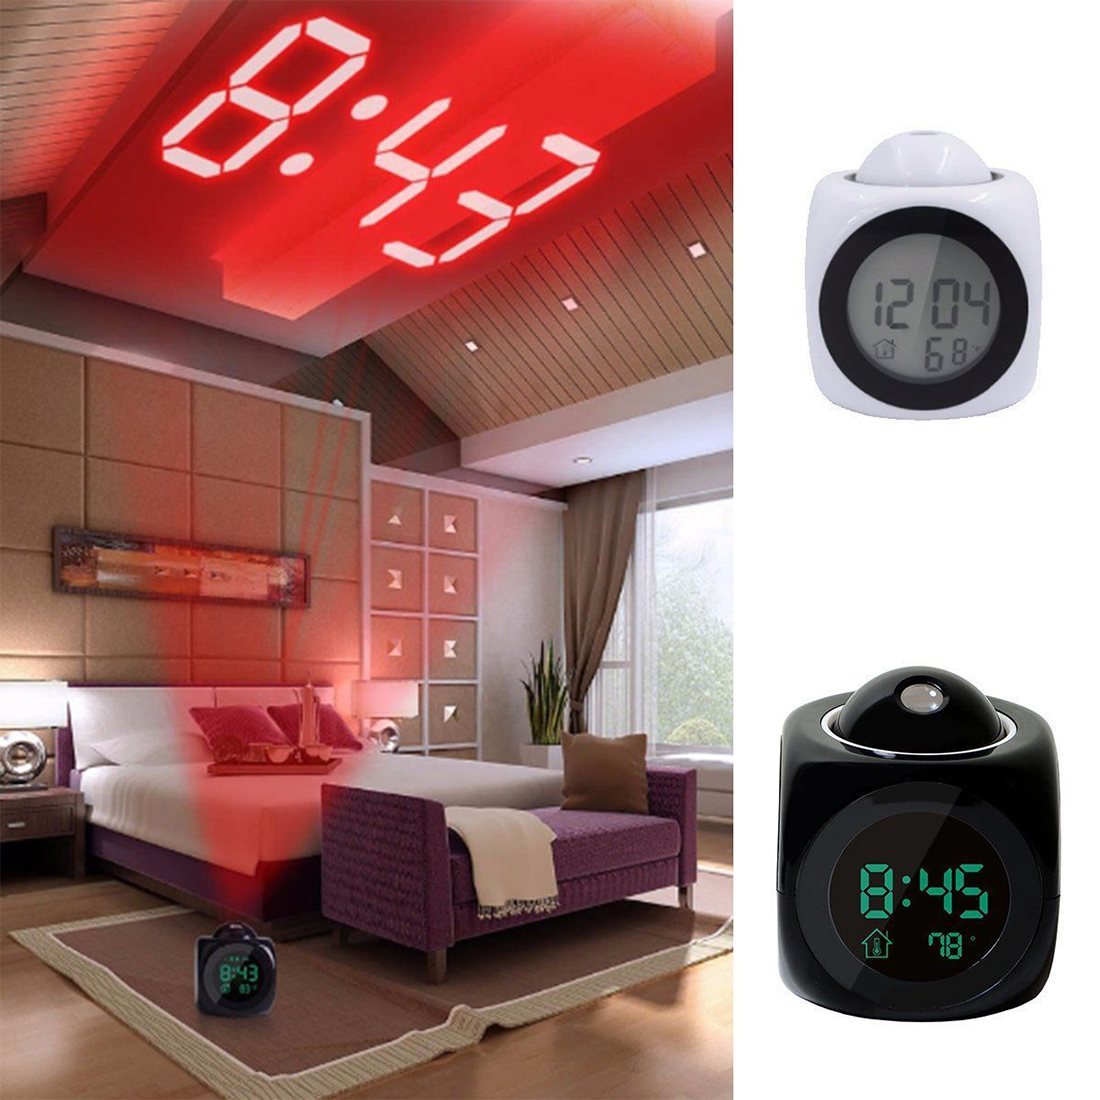 LCD Projection LED Display Time Digital Alarm Clock Talking Voice Prompt Thermometer Snooze Function Desktop Alarm Clock